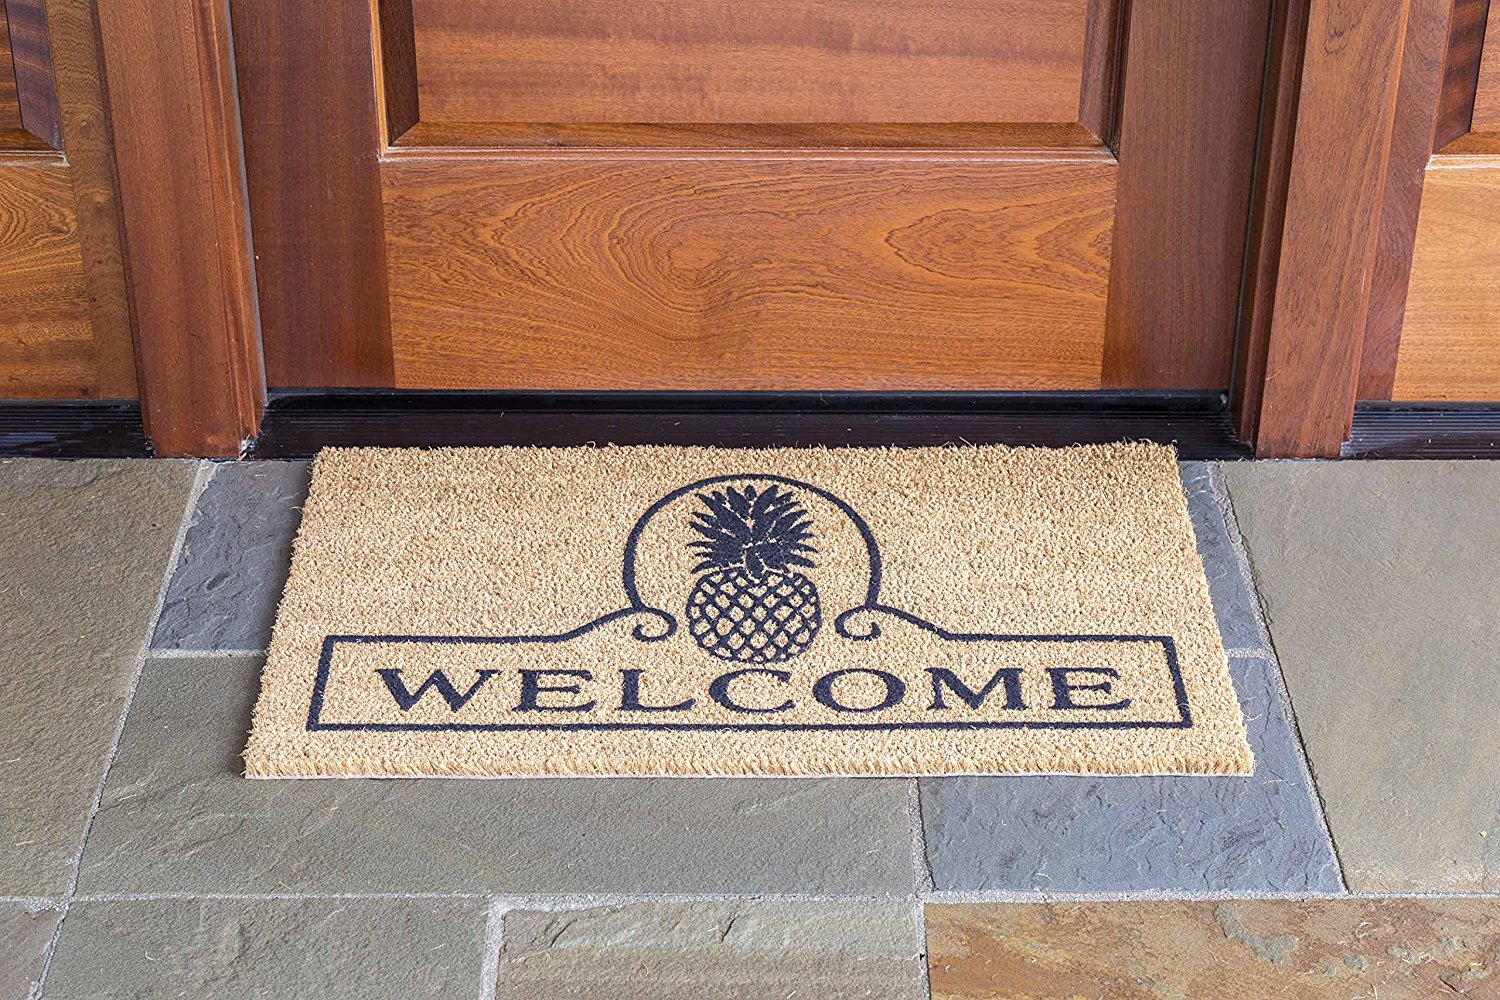 Pineapples are the symbol of welcome and this doormat is perfect for a home with pineapple decor!